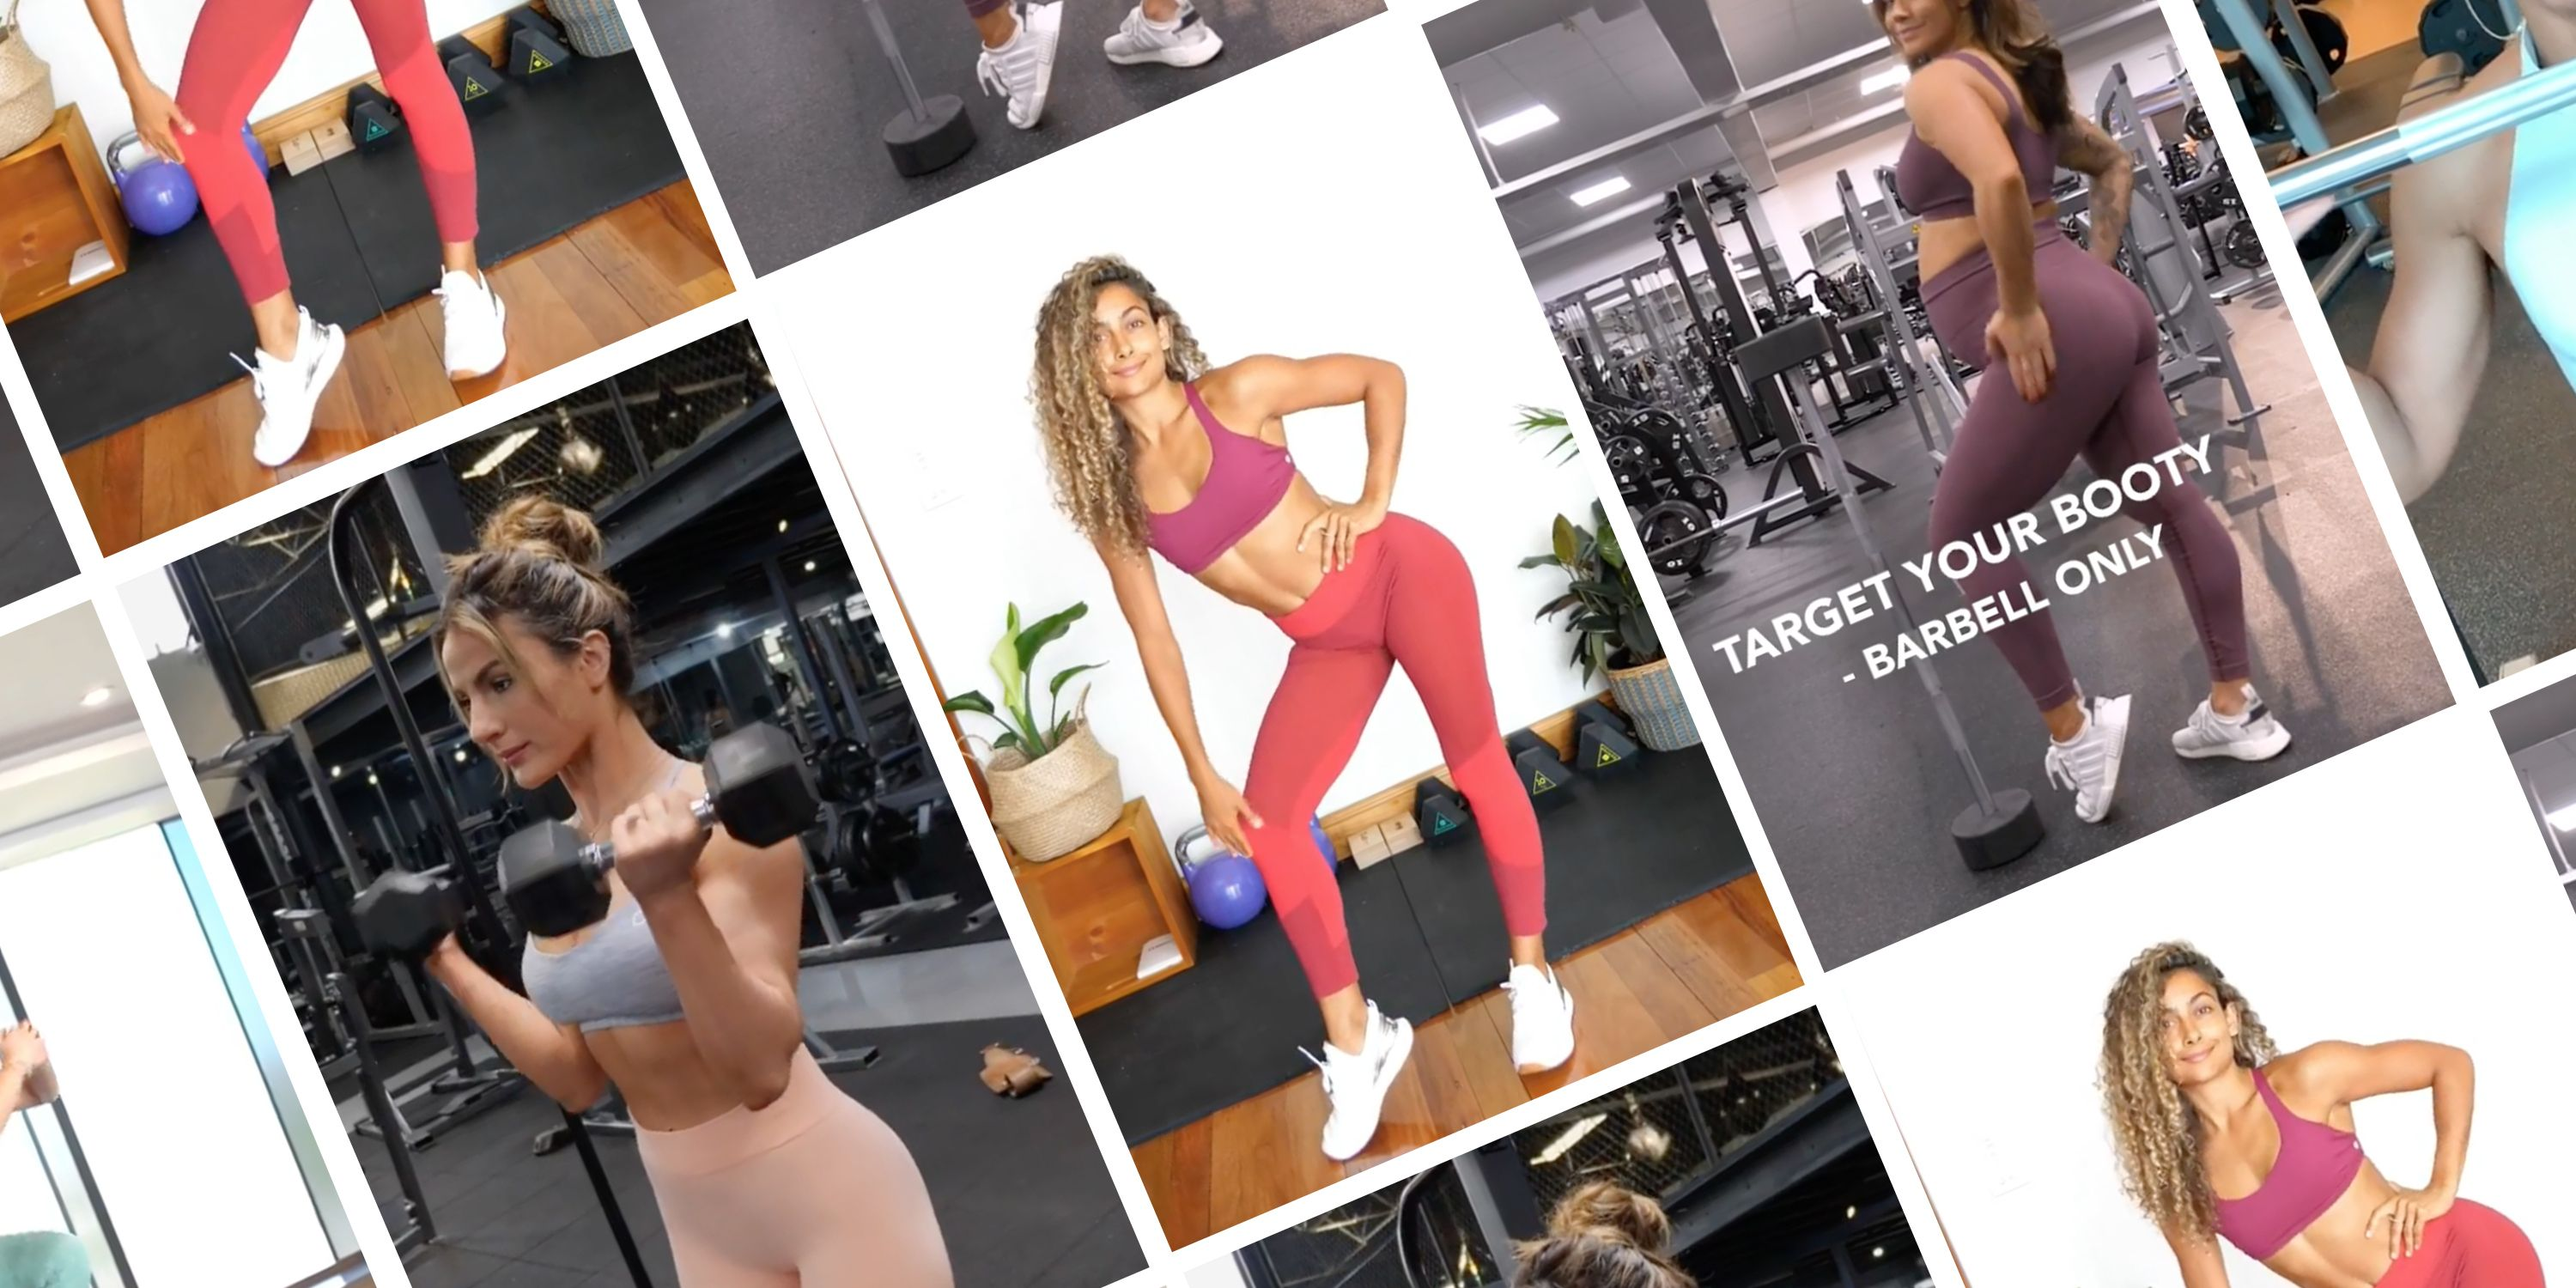 Hot girls awesome thick bodies pics 31 Inspiring Fit Girls On Instagram Workout Motivation From Female Fitness Models